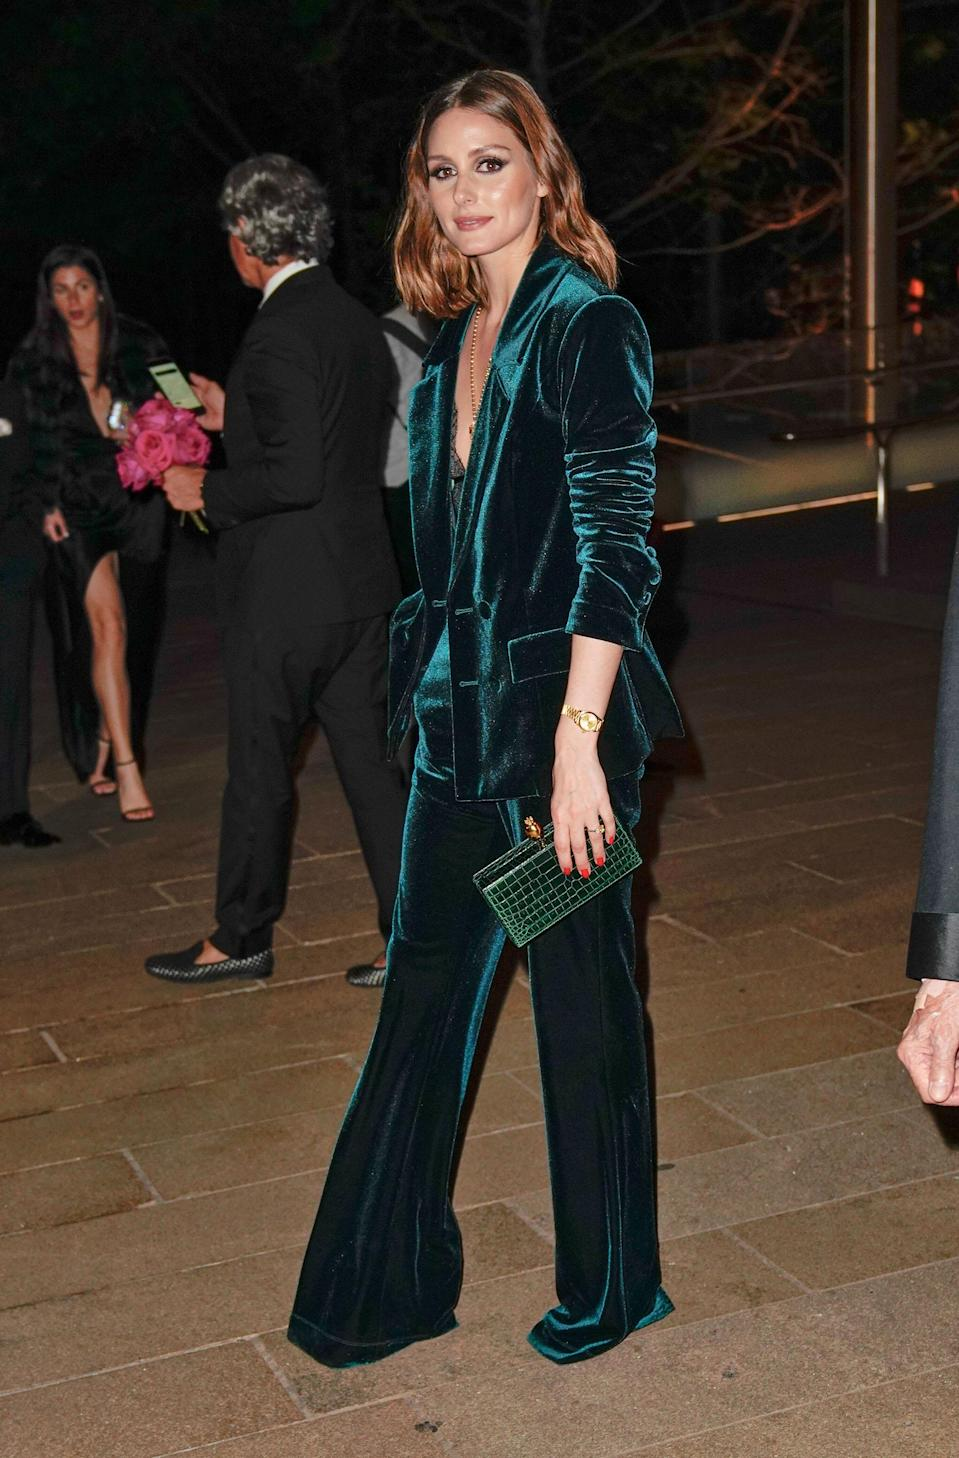 <p>Style maven Palermo made us all want a green velvet suit immediately when she stepped out in one for the ballet. Keeping her evening look sulty, she paire it with ust a lace bodice worn underneath.<em>[Photo: Getty]</em> </p>